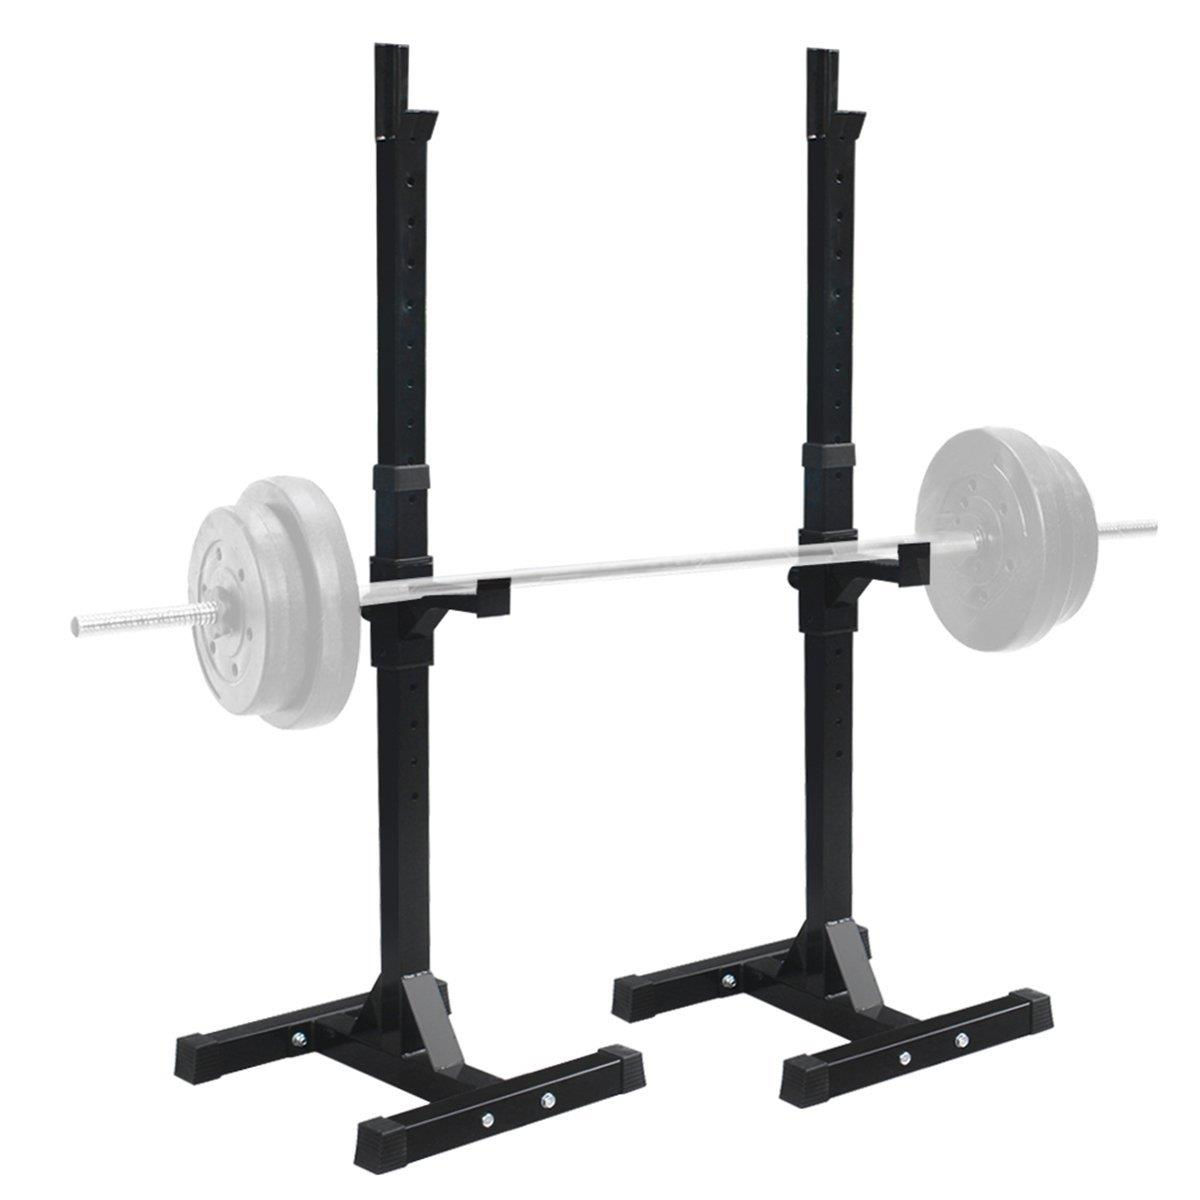 Ktaxon Pair of Standard Solid Barbell Bench Adjustable Steel Squat Rack Stands for Gym Workout Exercise